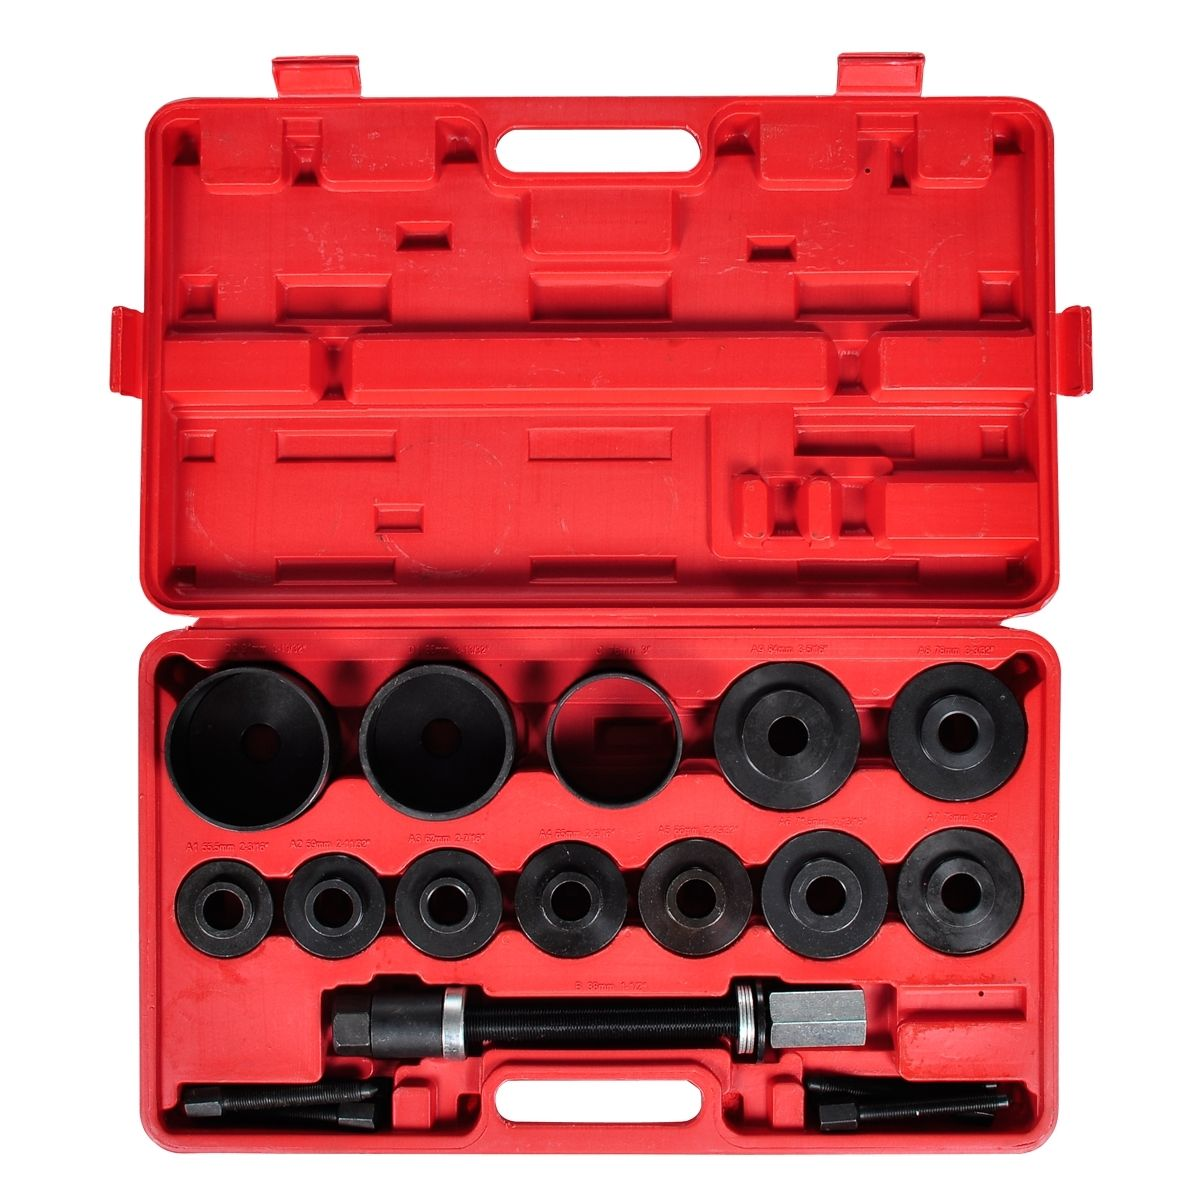 23 pcs FWD Front Wheel Removal Tool Kit Drive Bearing Puller Master Set Hub & Case by